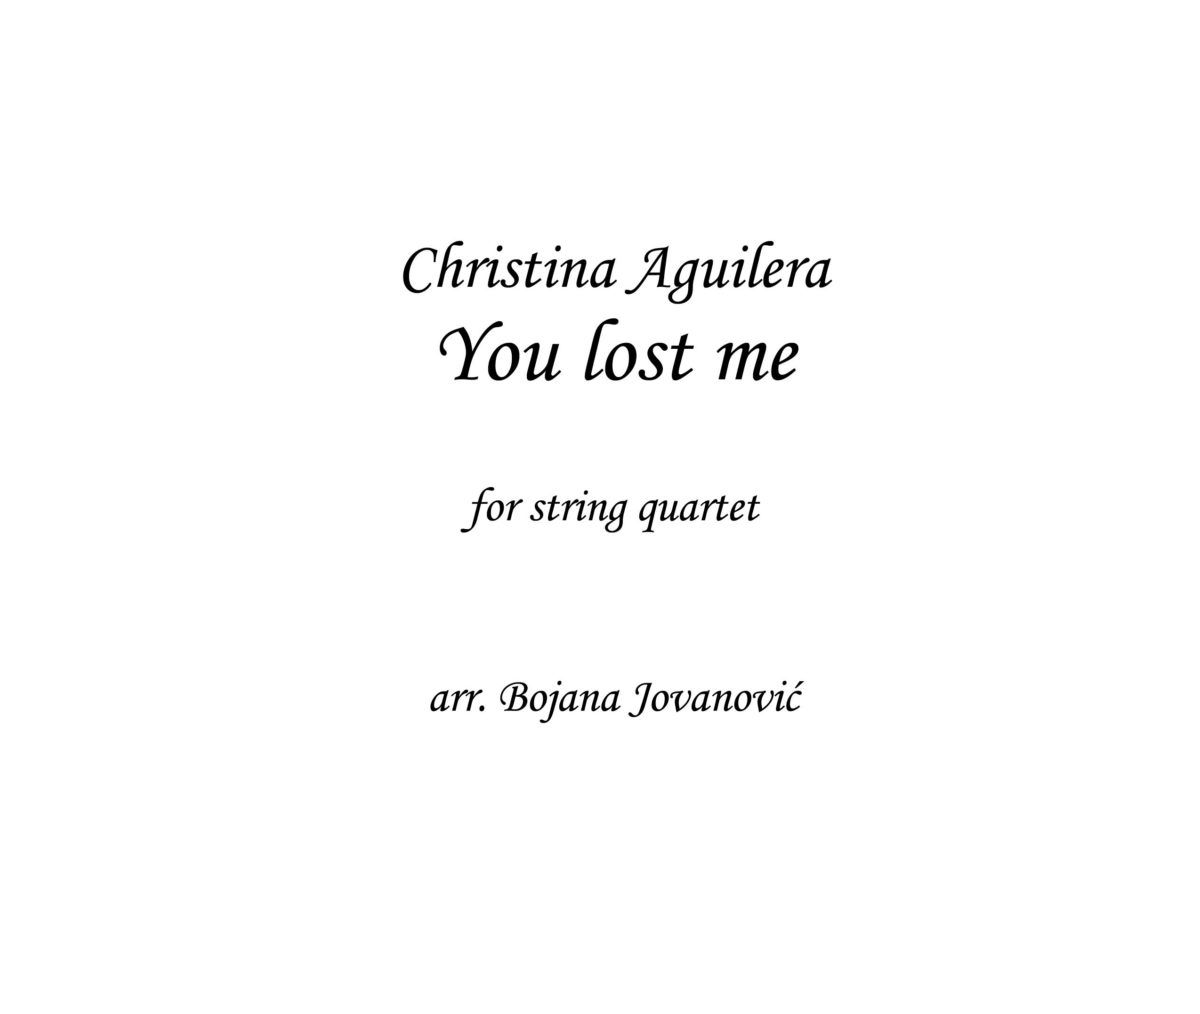 You lost me (Christina Aguilera) - Sheet Music